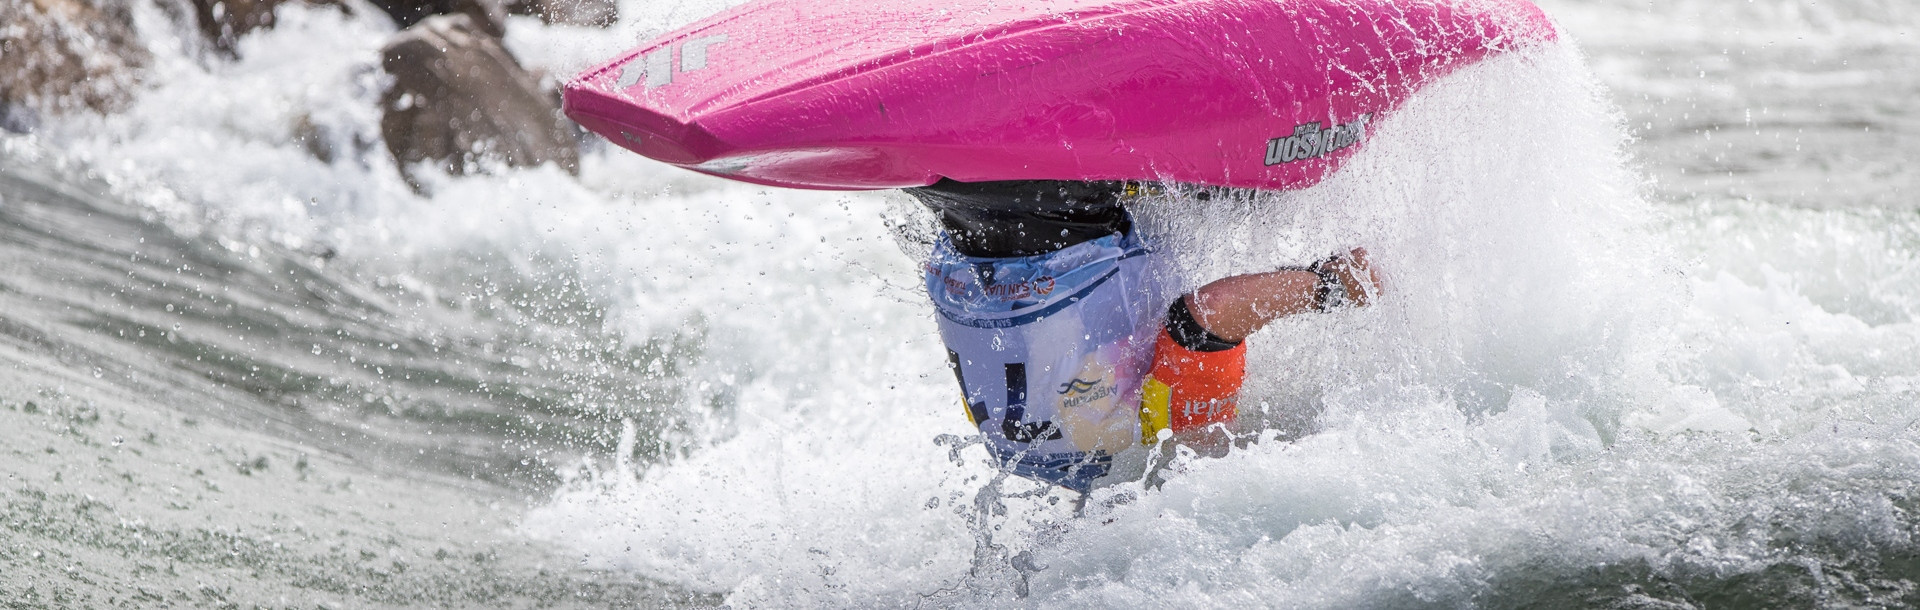 The United States' Dane Jackson claimed his third men's canoe world title as action concluded today at the 2017 ICF Canoe Freestyle Kayak Championships in San Juan in Argentina ©ICF/Peter Holcombe